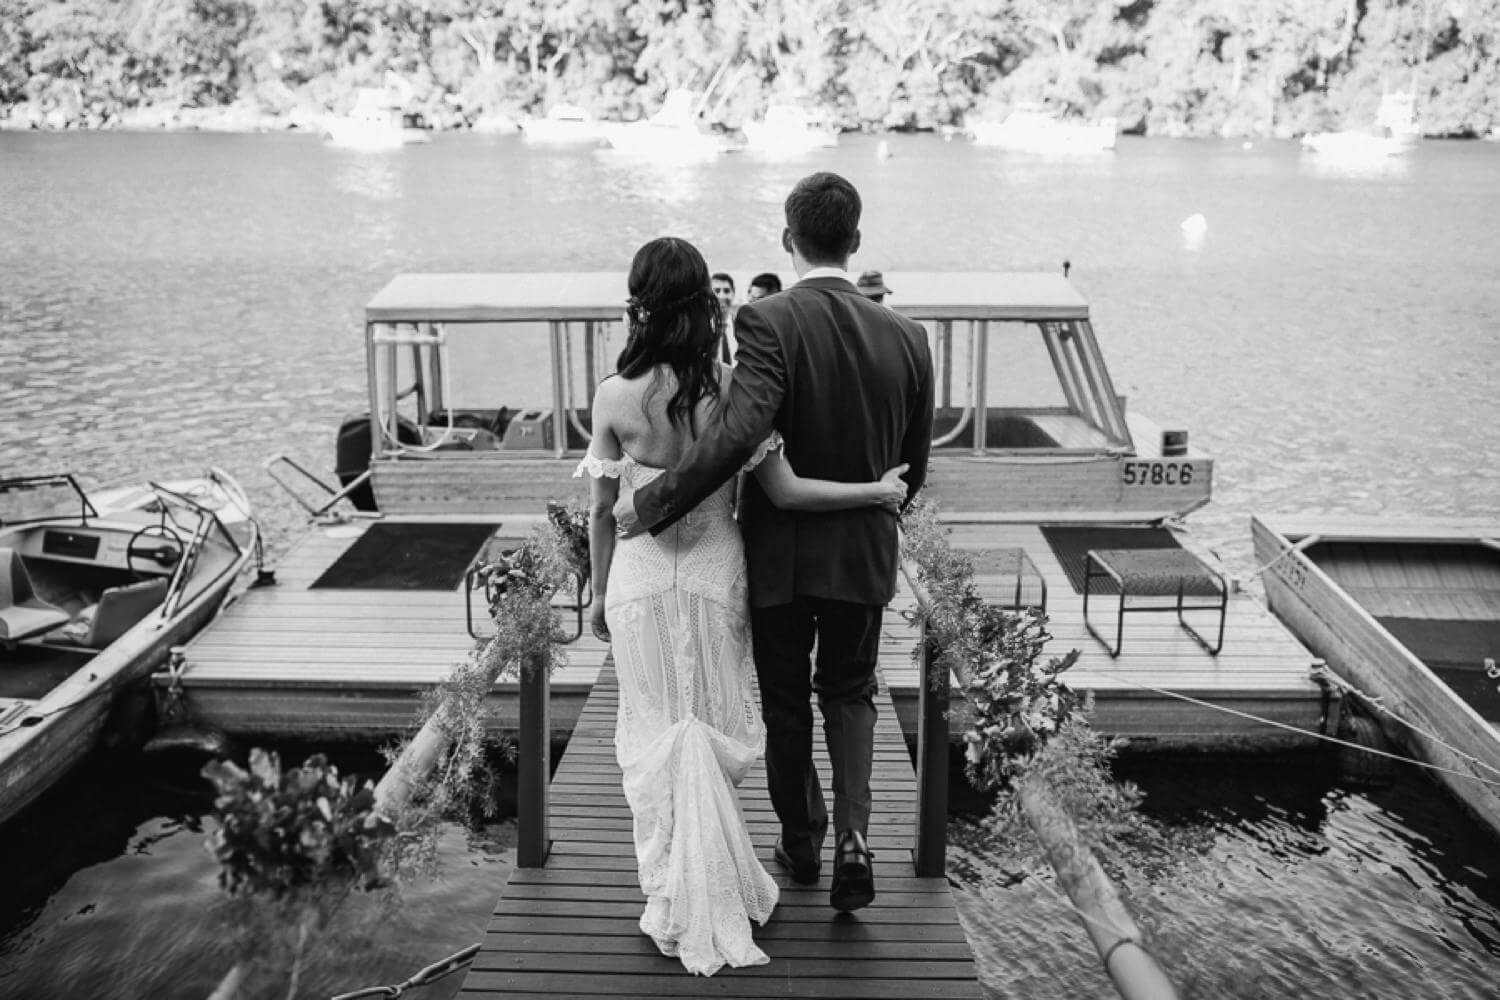 berowra-waters-wedding-photographer-172